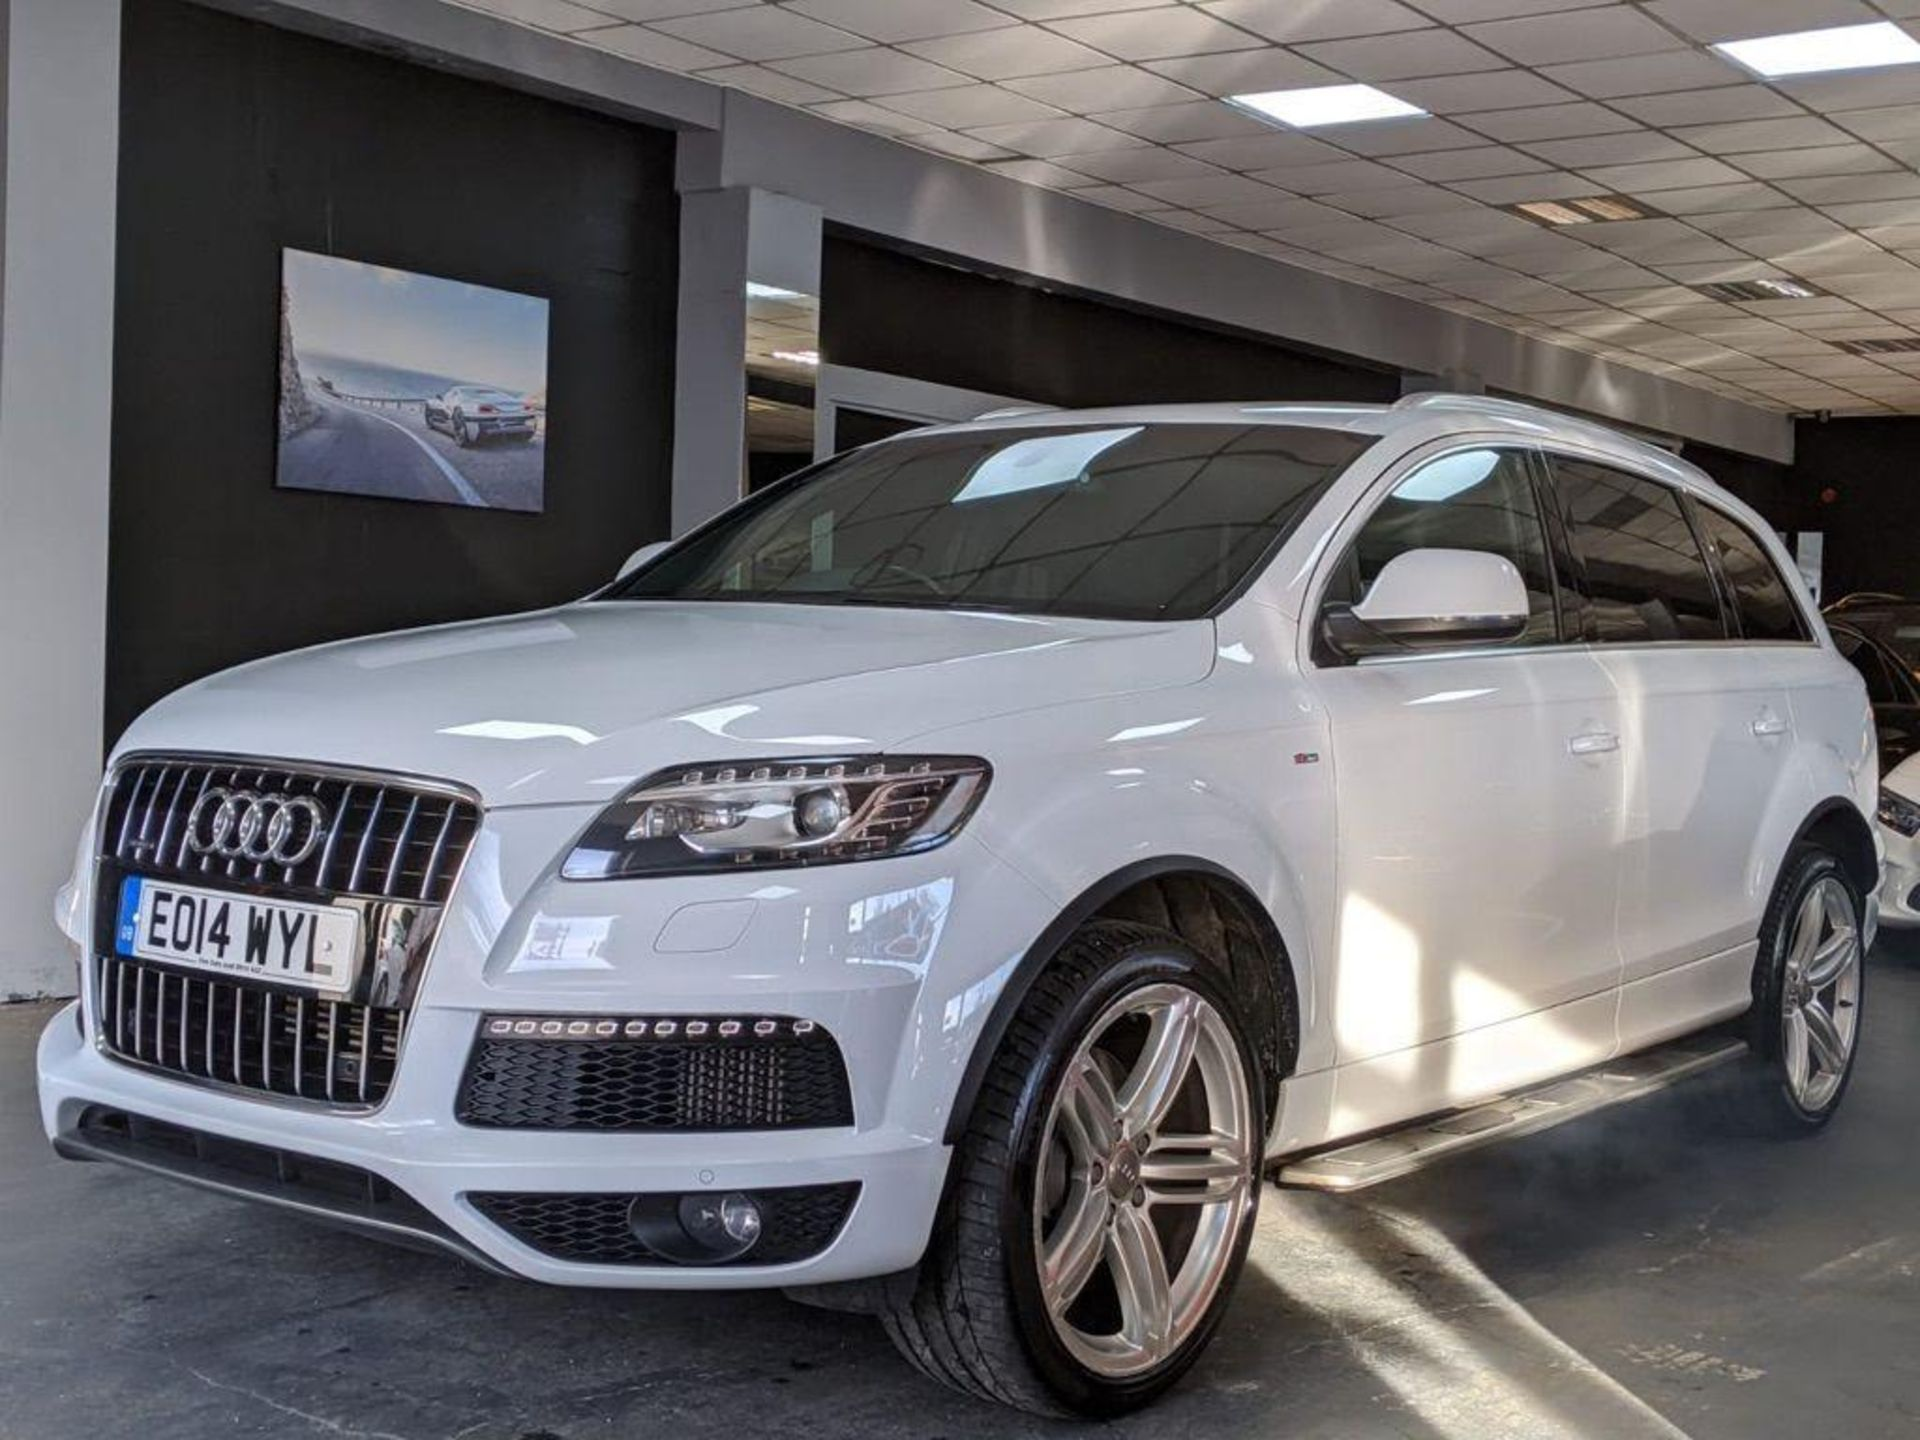 2014/14 REG AUDI Q7 S LINE + TDI QUATTRO 3.0 DIESEL AUTO 245 PS 7 SEAT, SHOWING 3 FORMER KEEPERS - Image 2 of 36